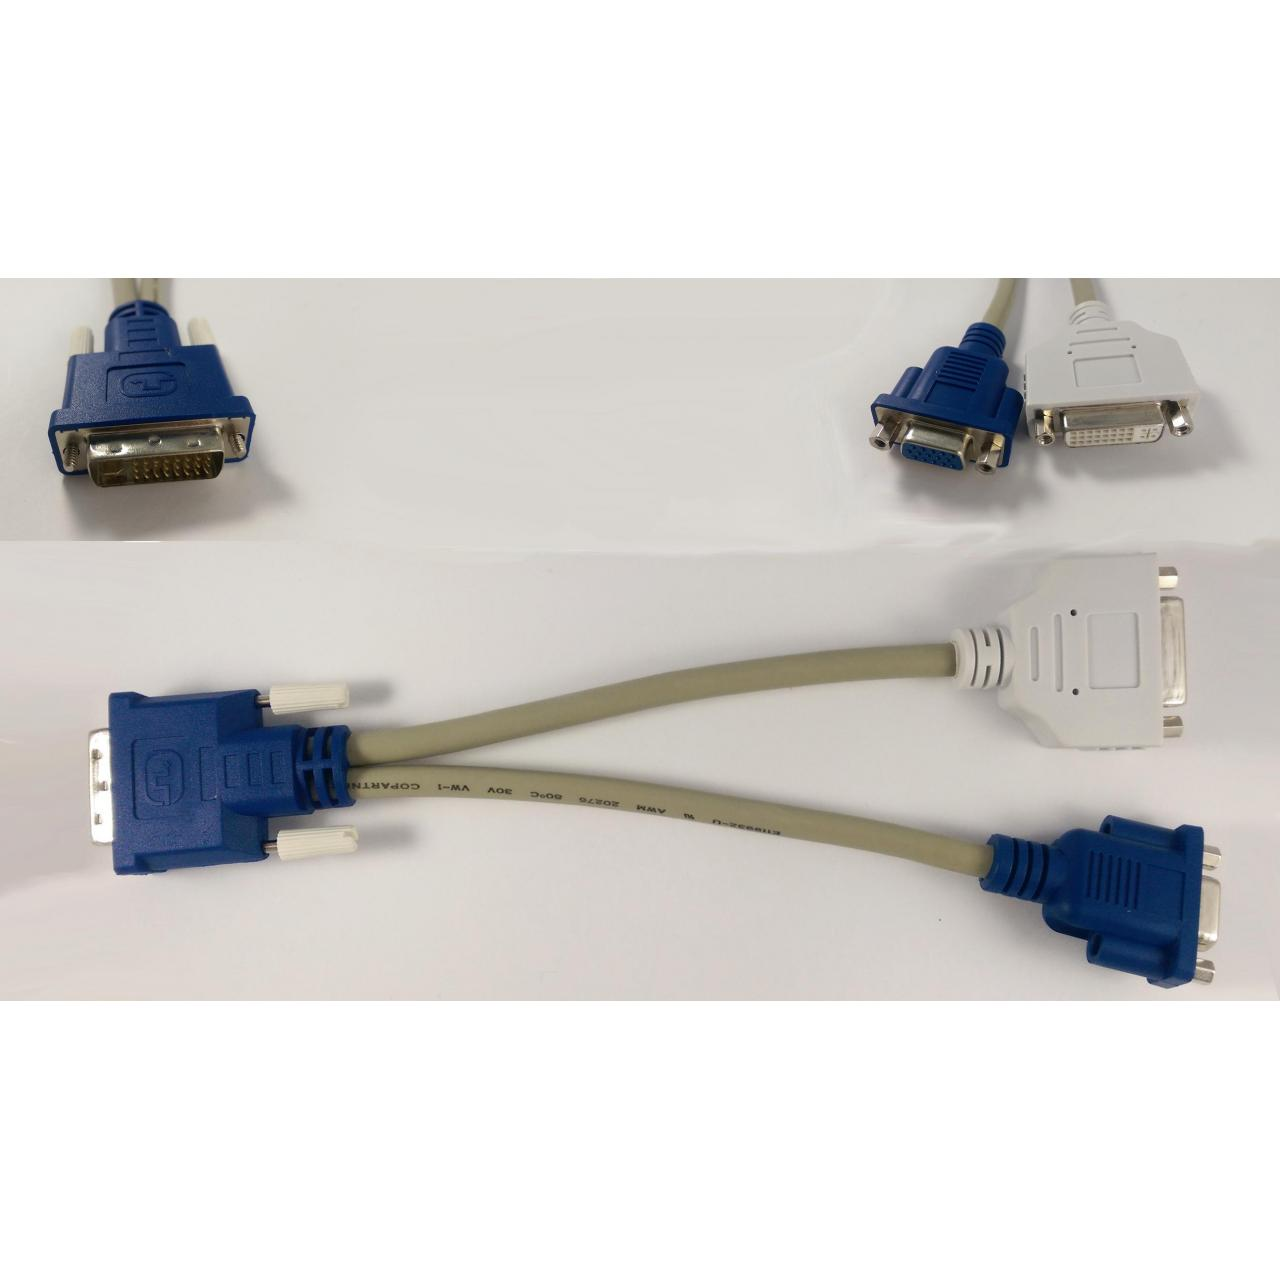 Buy cheap Usb Connector 16-270-E001 from wholesalers